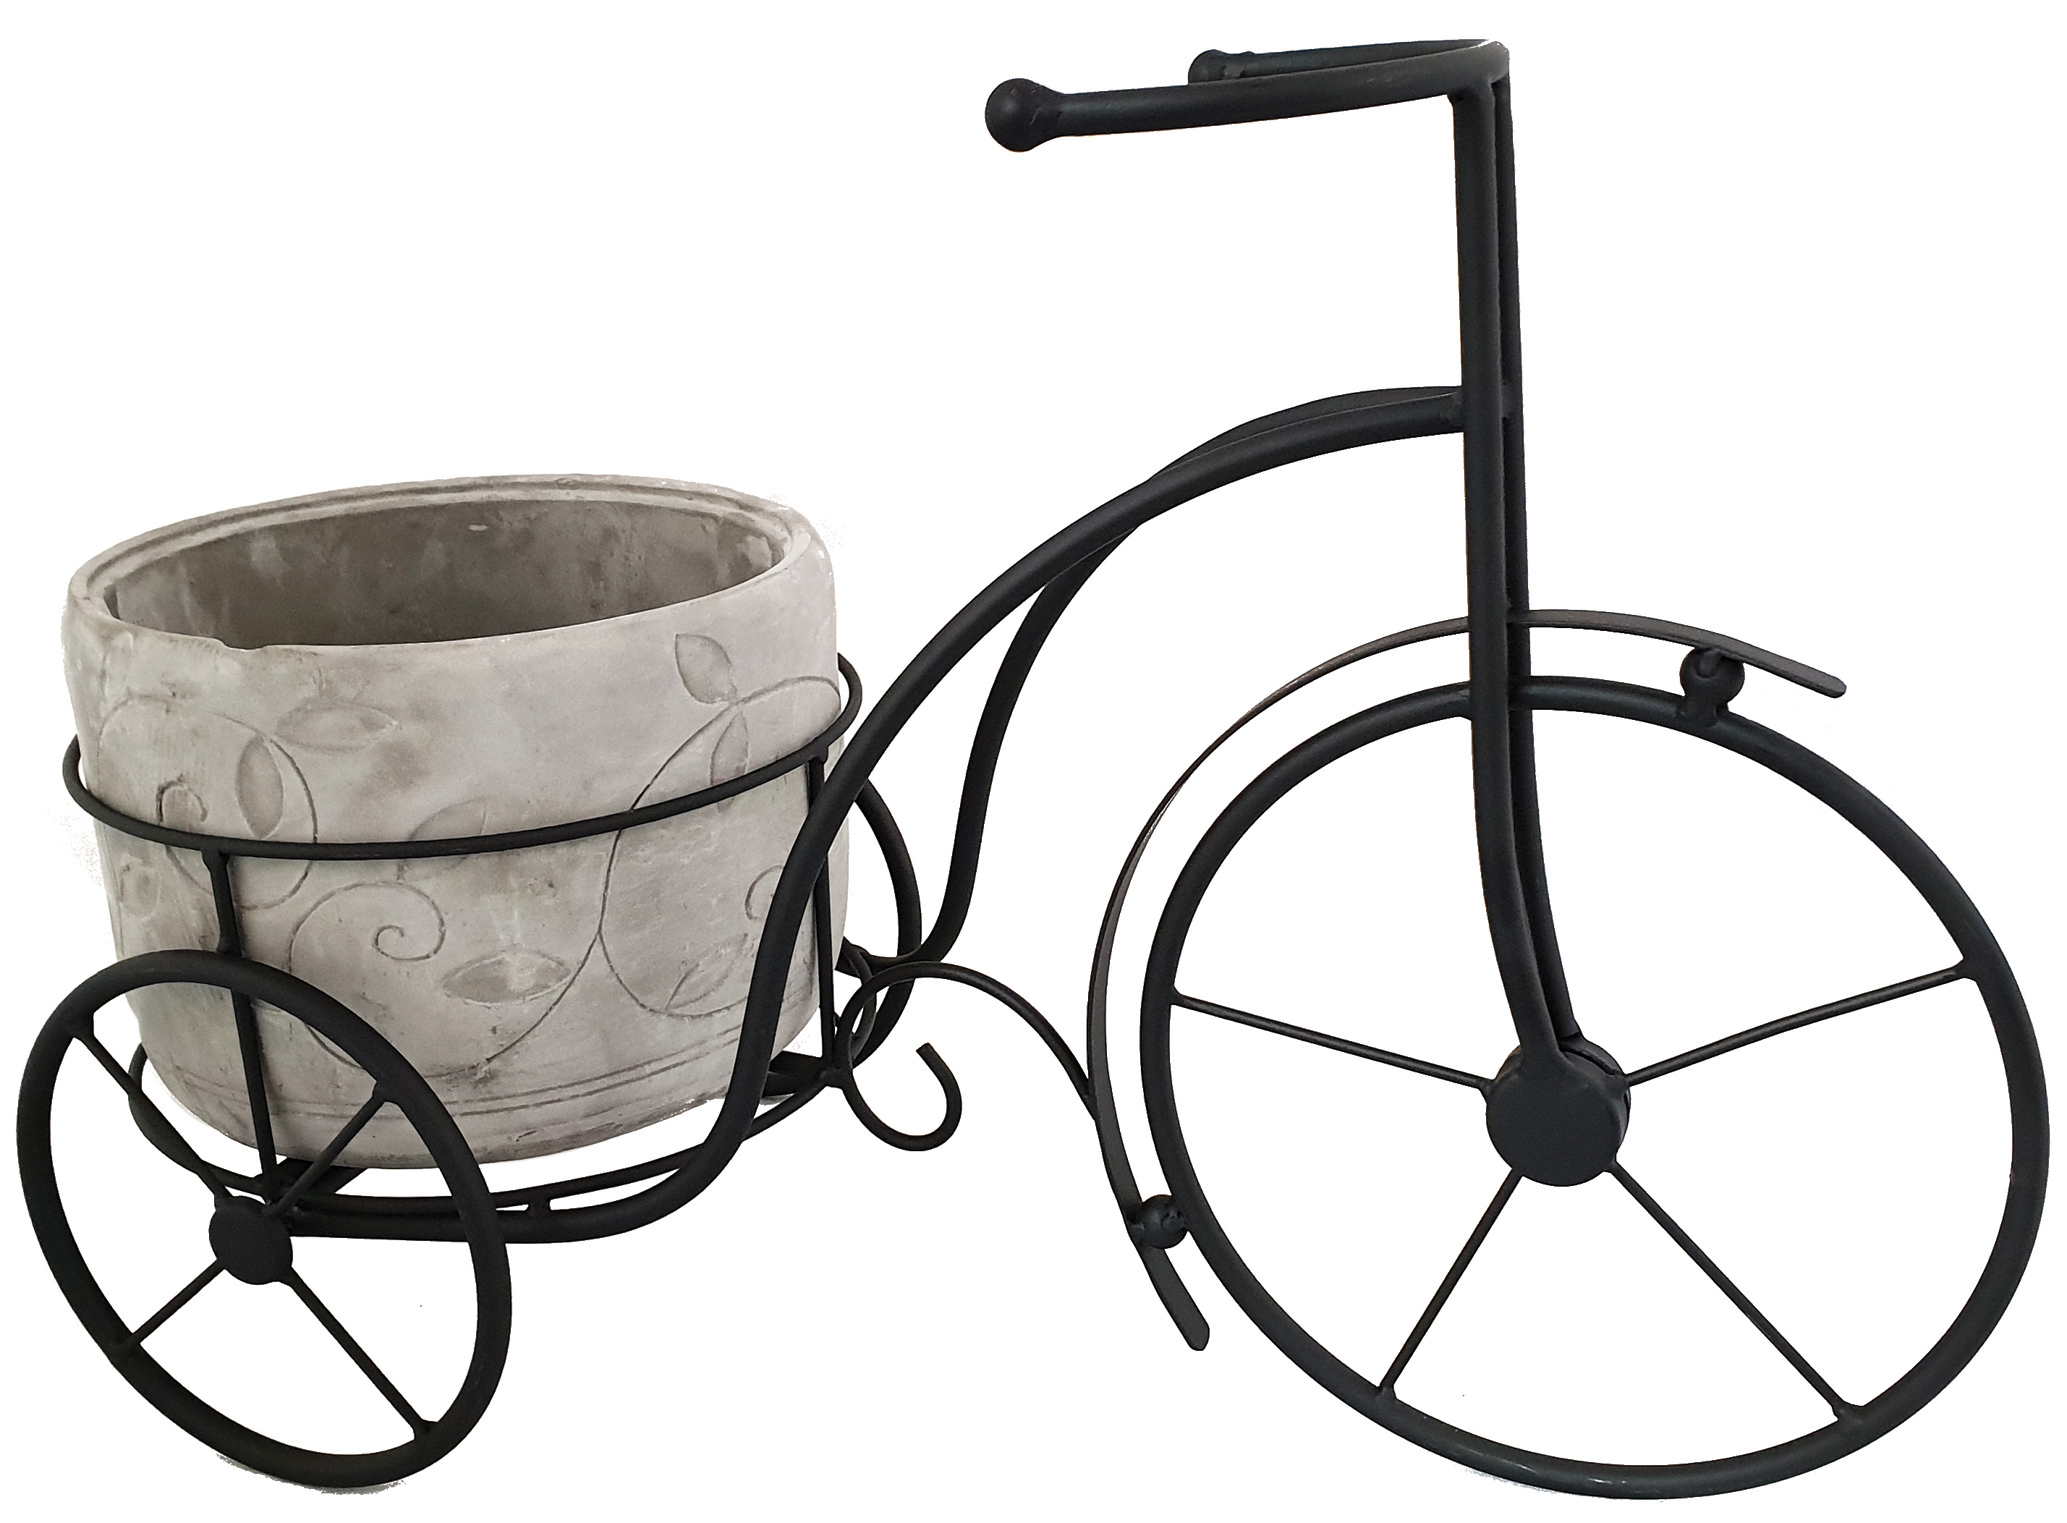 Metal Trike holding a concrete pot planter